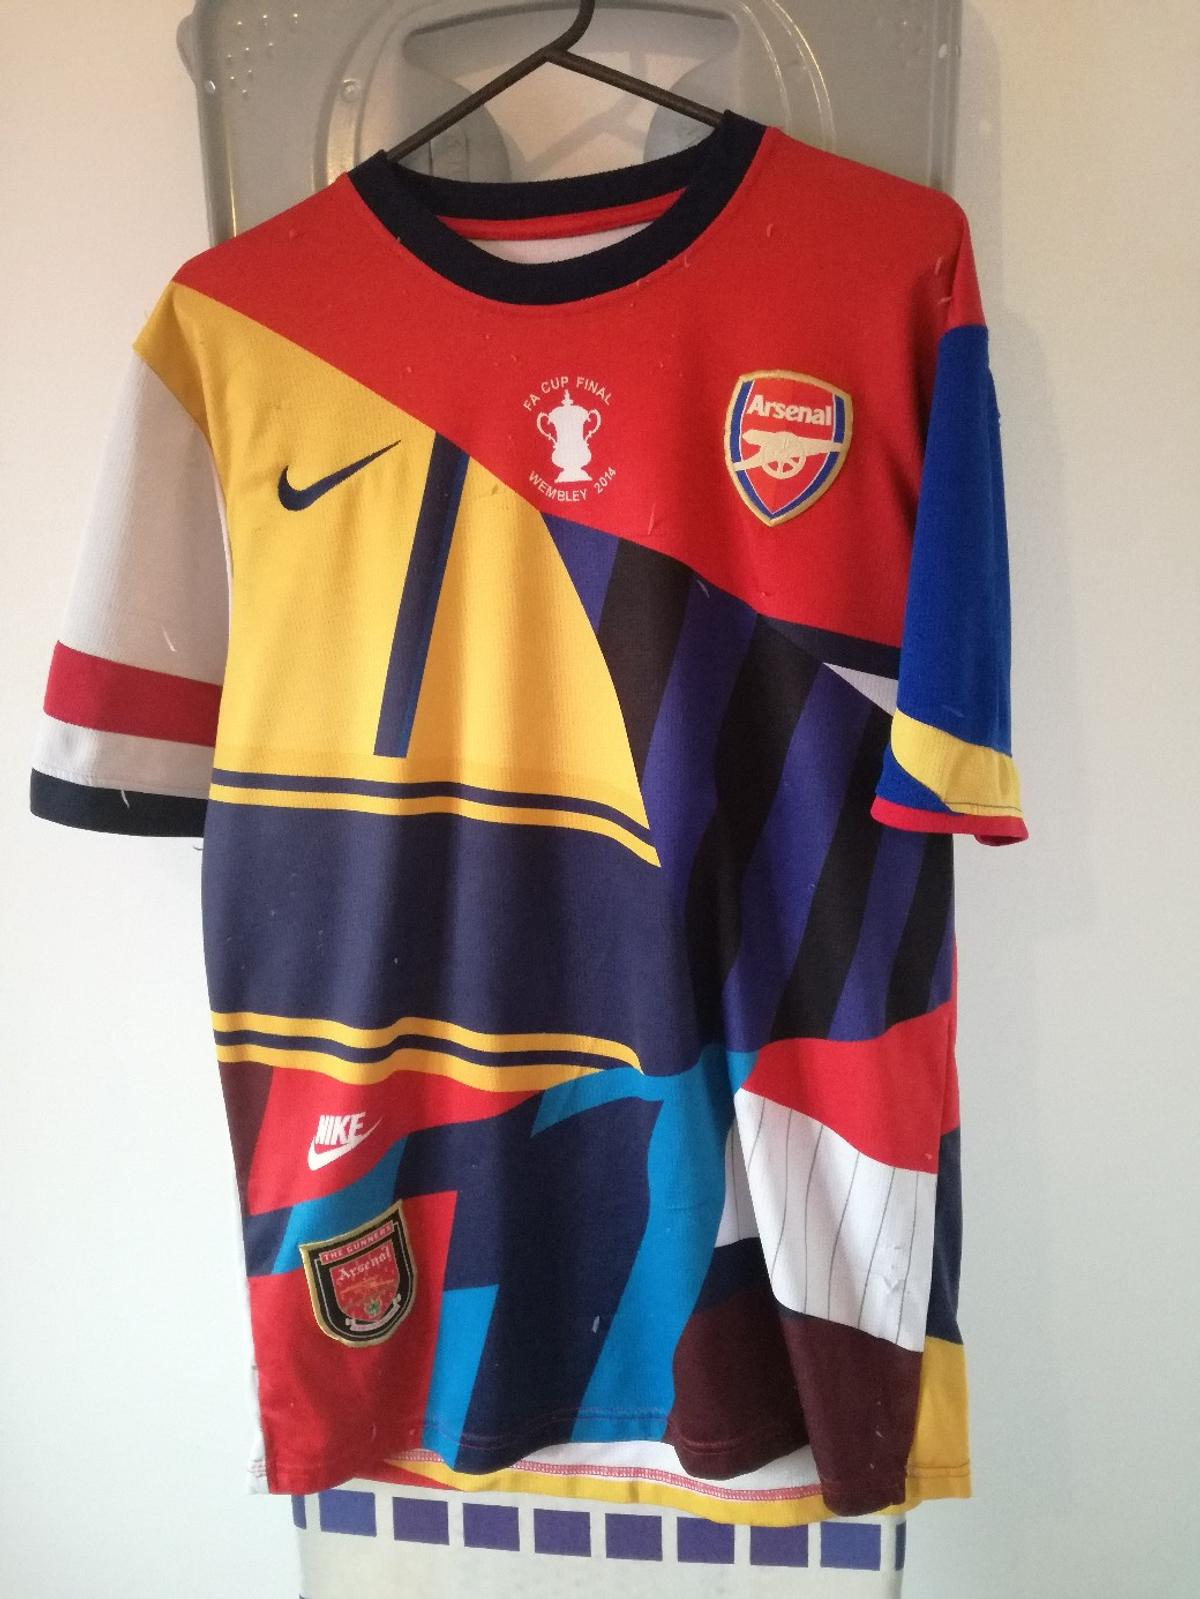 best sneakers c0ef4 f3cd2 Arsenal Football ltd edition shirt in Leicester for £35.00 ...